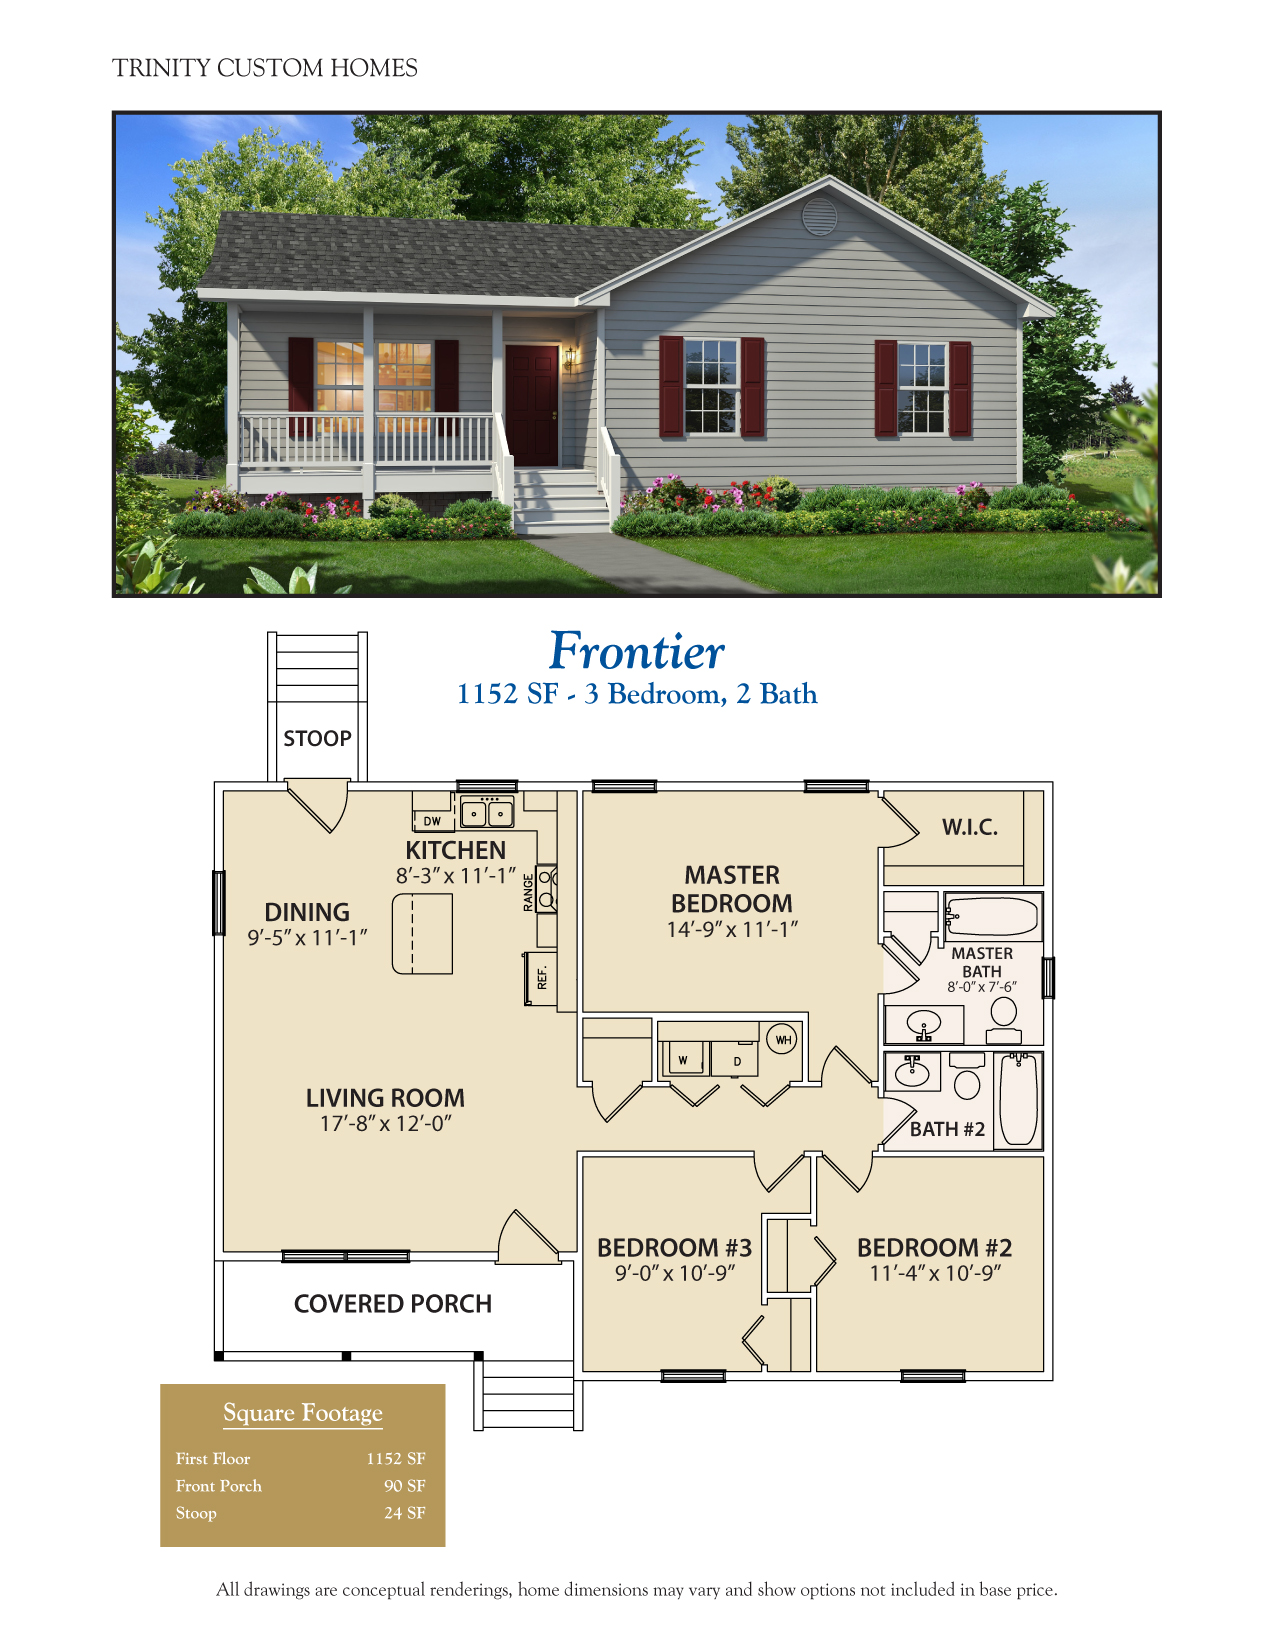 Trinity custom homes floor plans gurus floor for Custom building plans